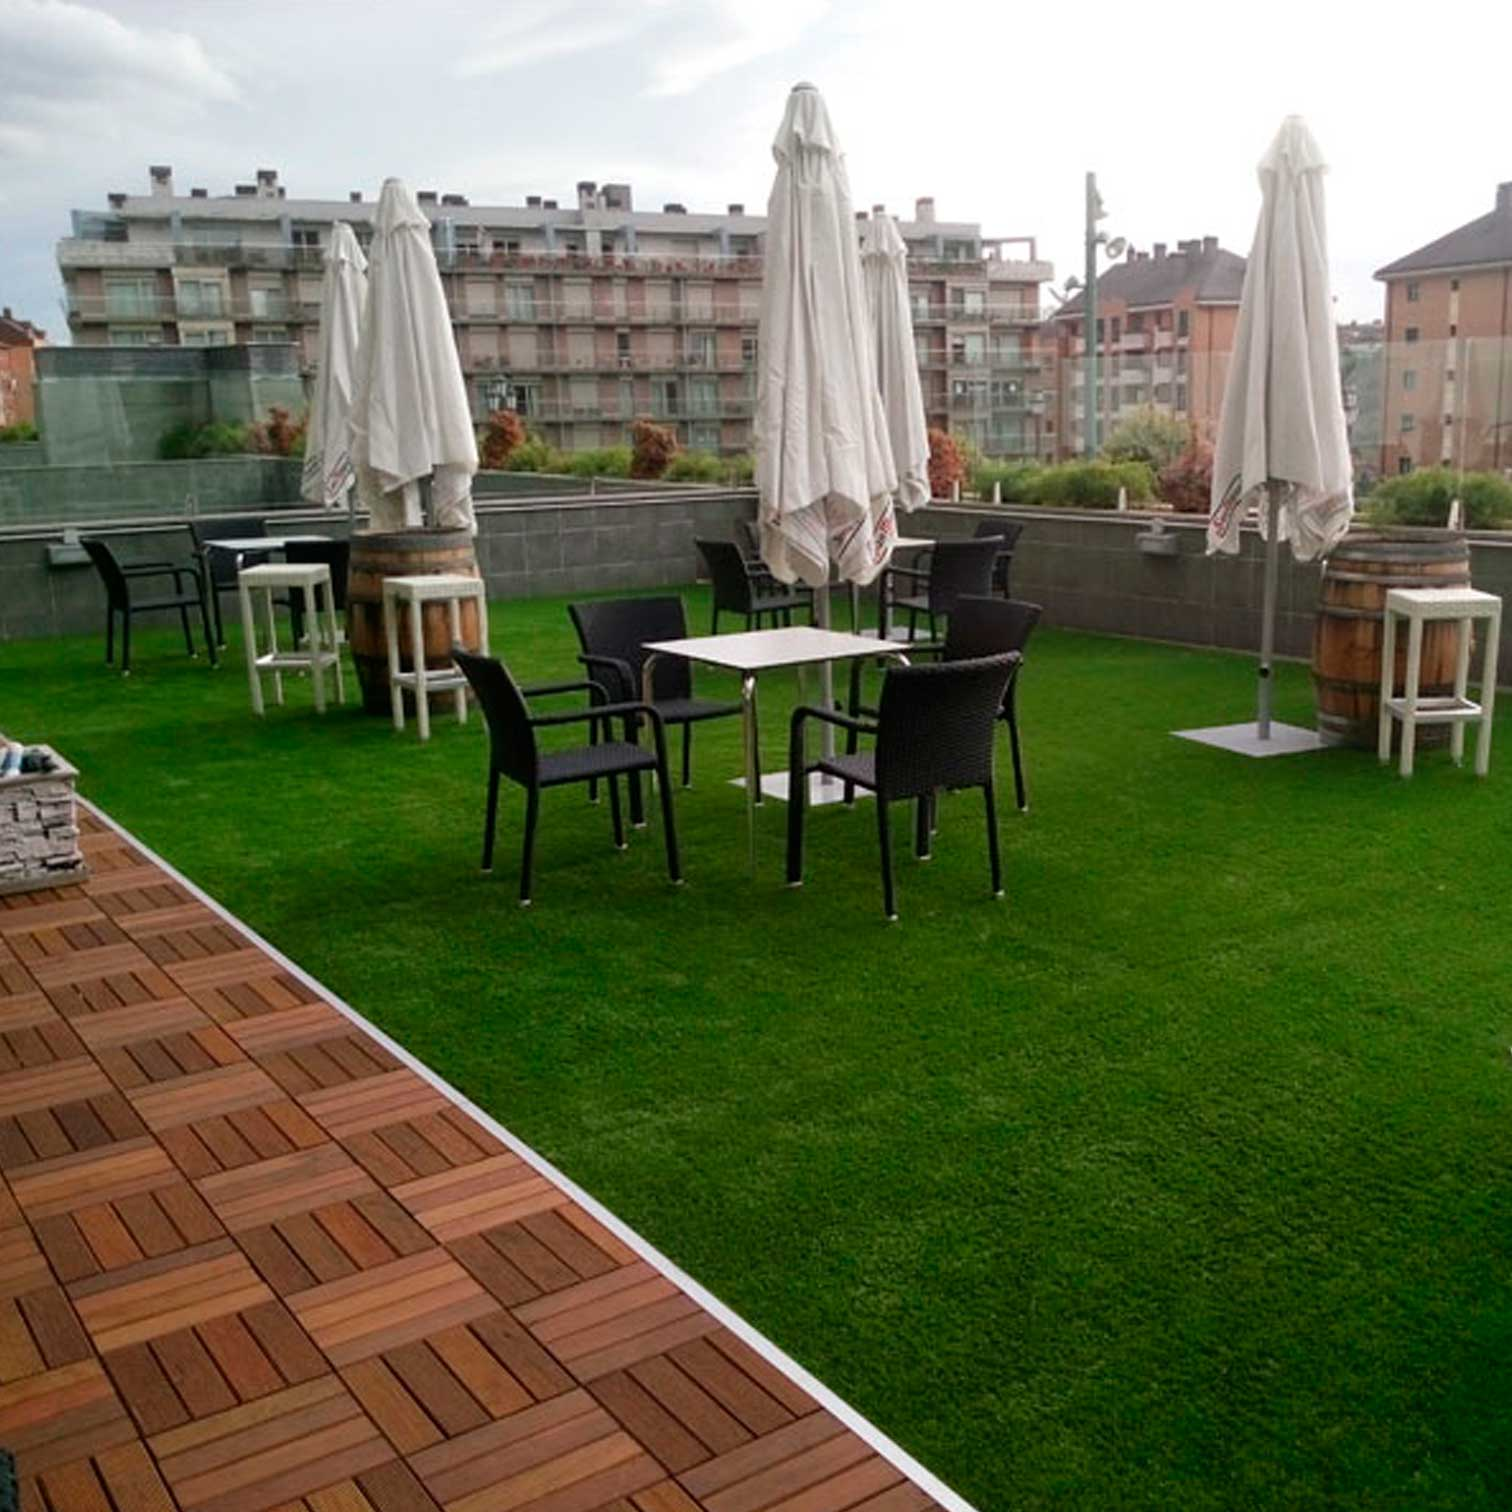 Cesped artificial terraza peinar csped para arena de - Terraza con cesped artificial ...